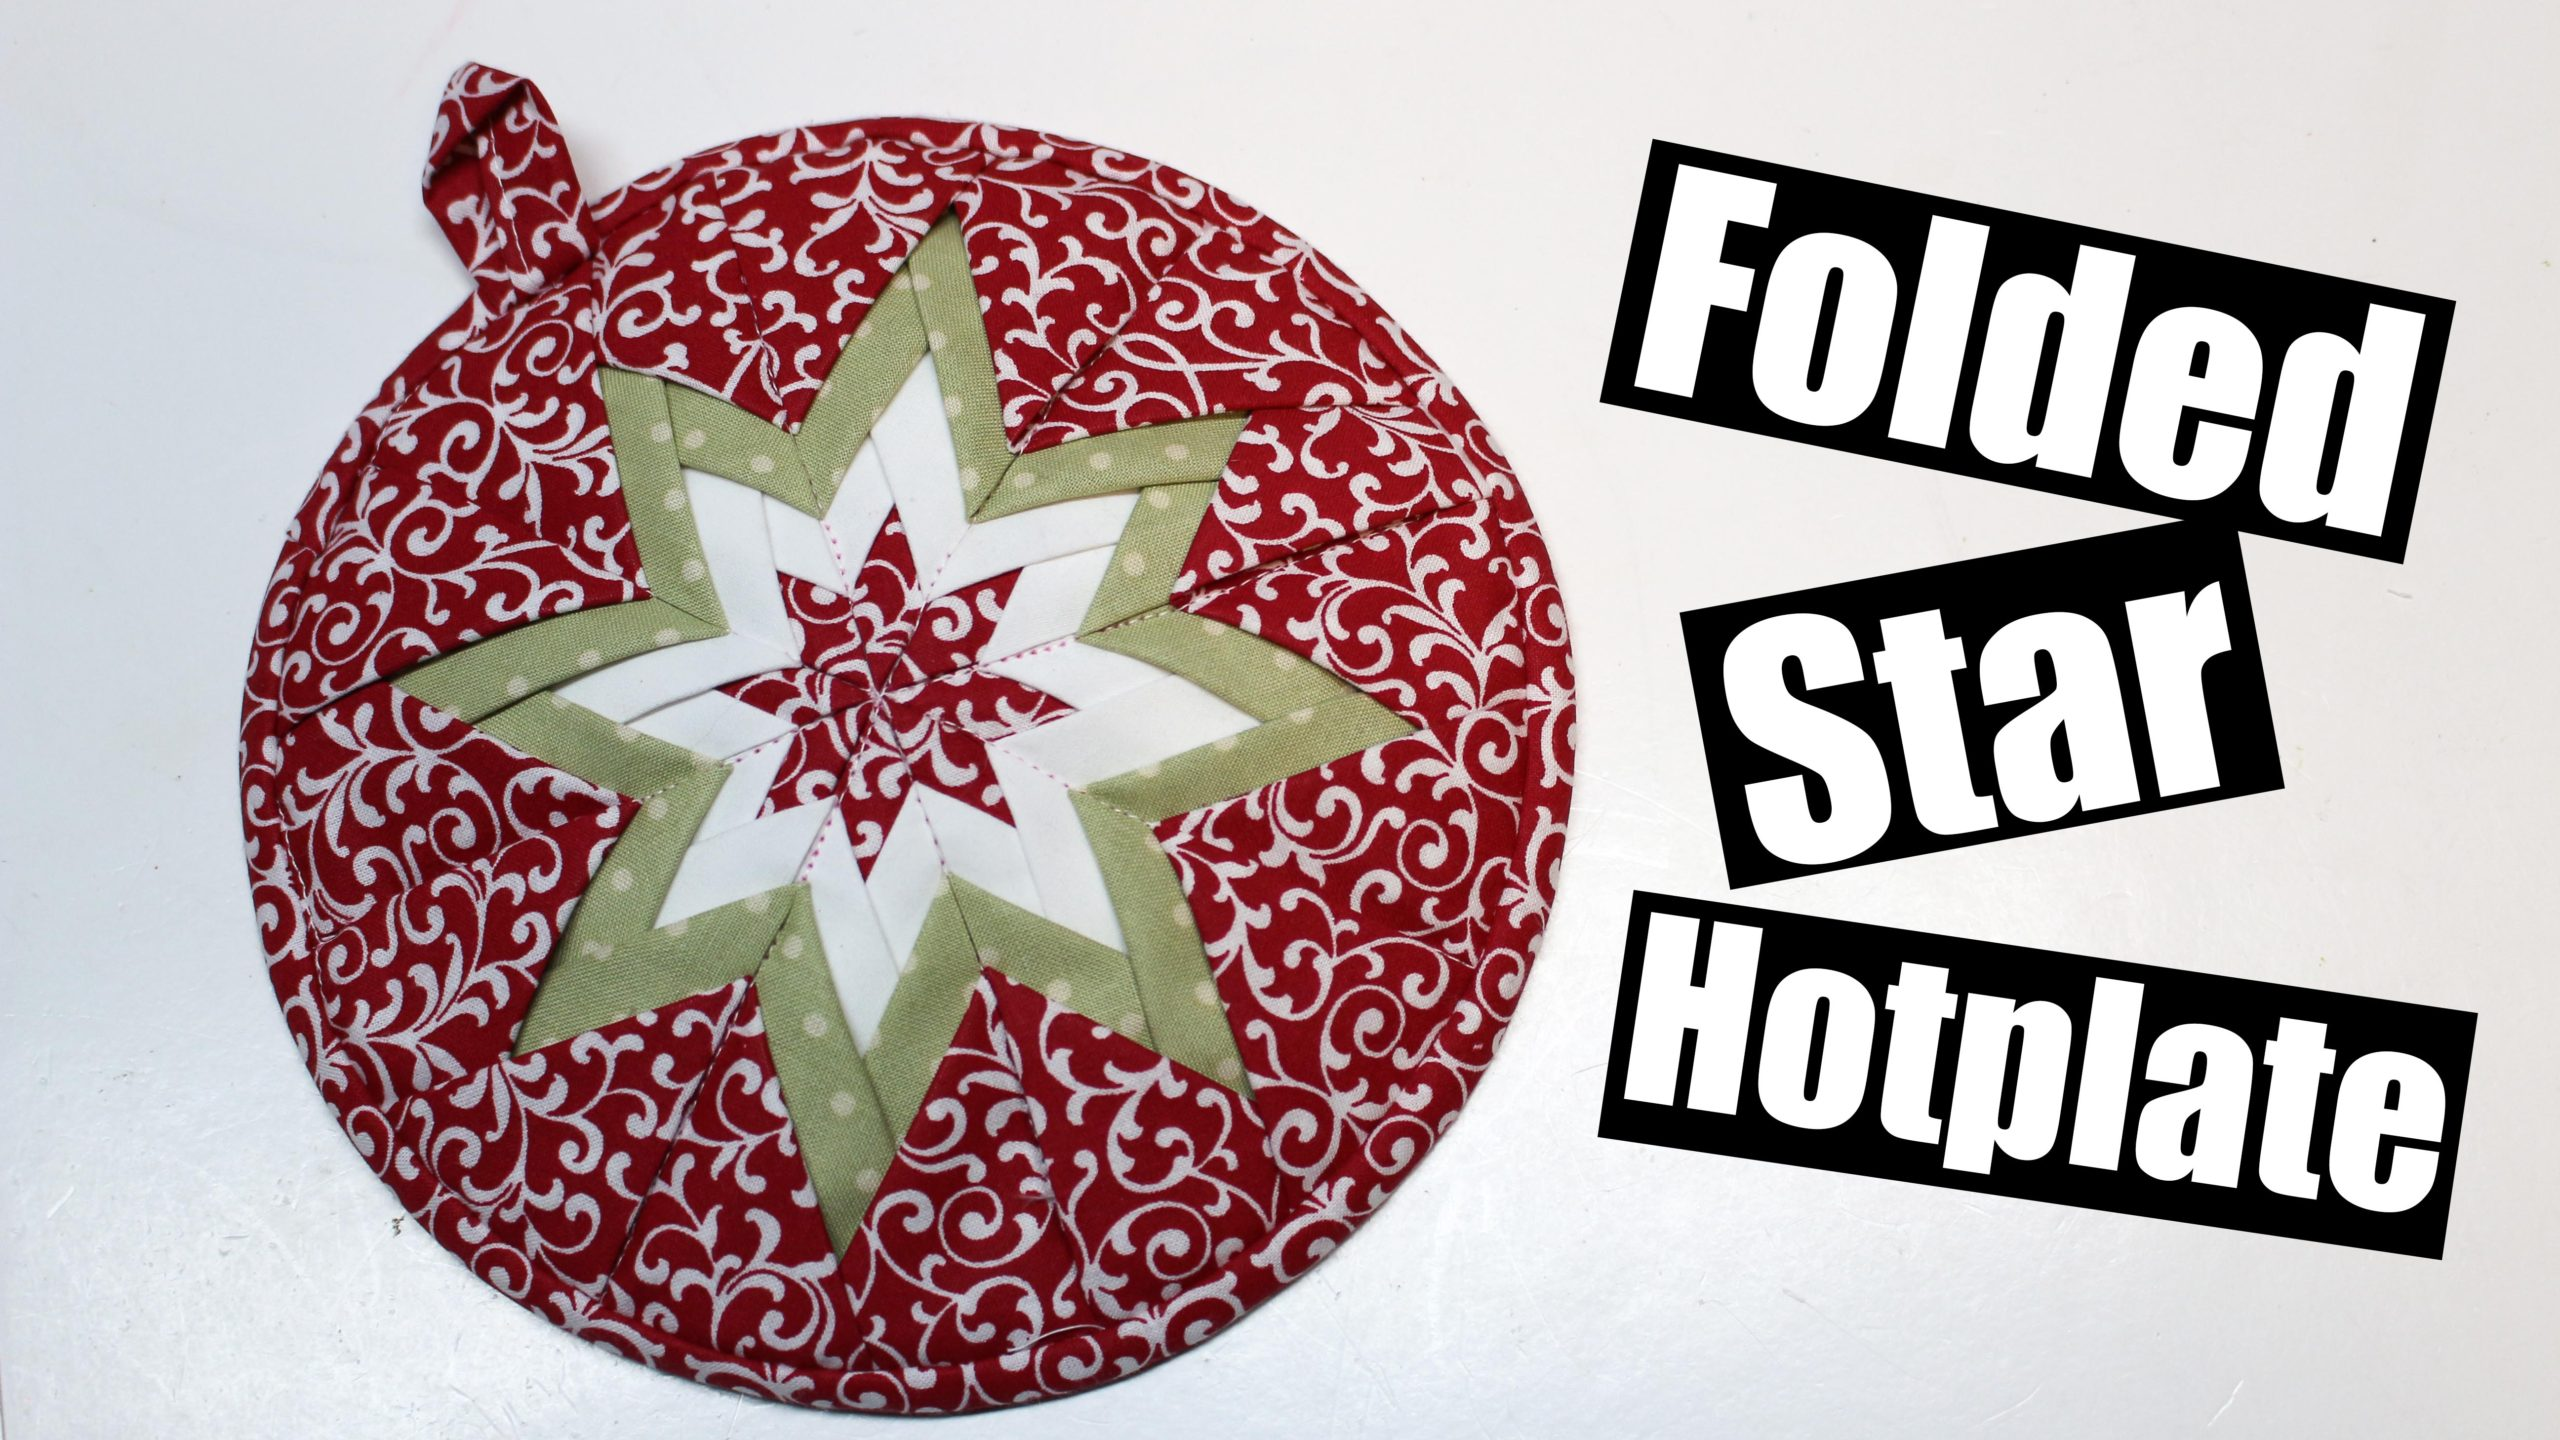 Folded star hot plate